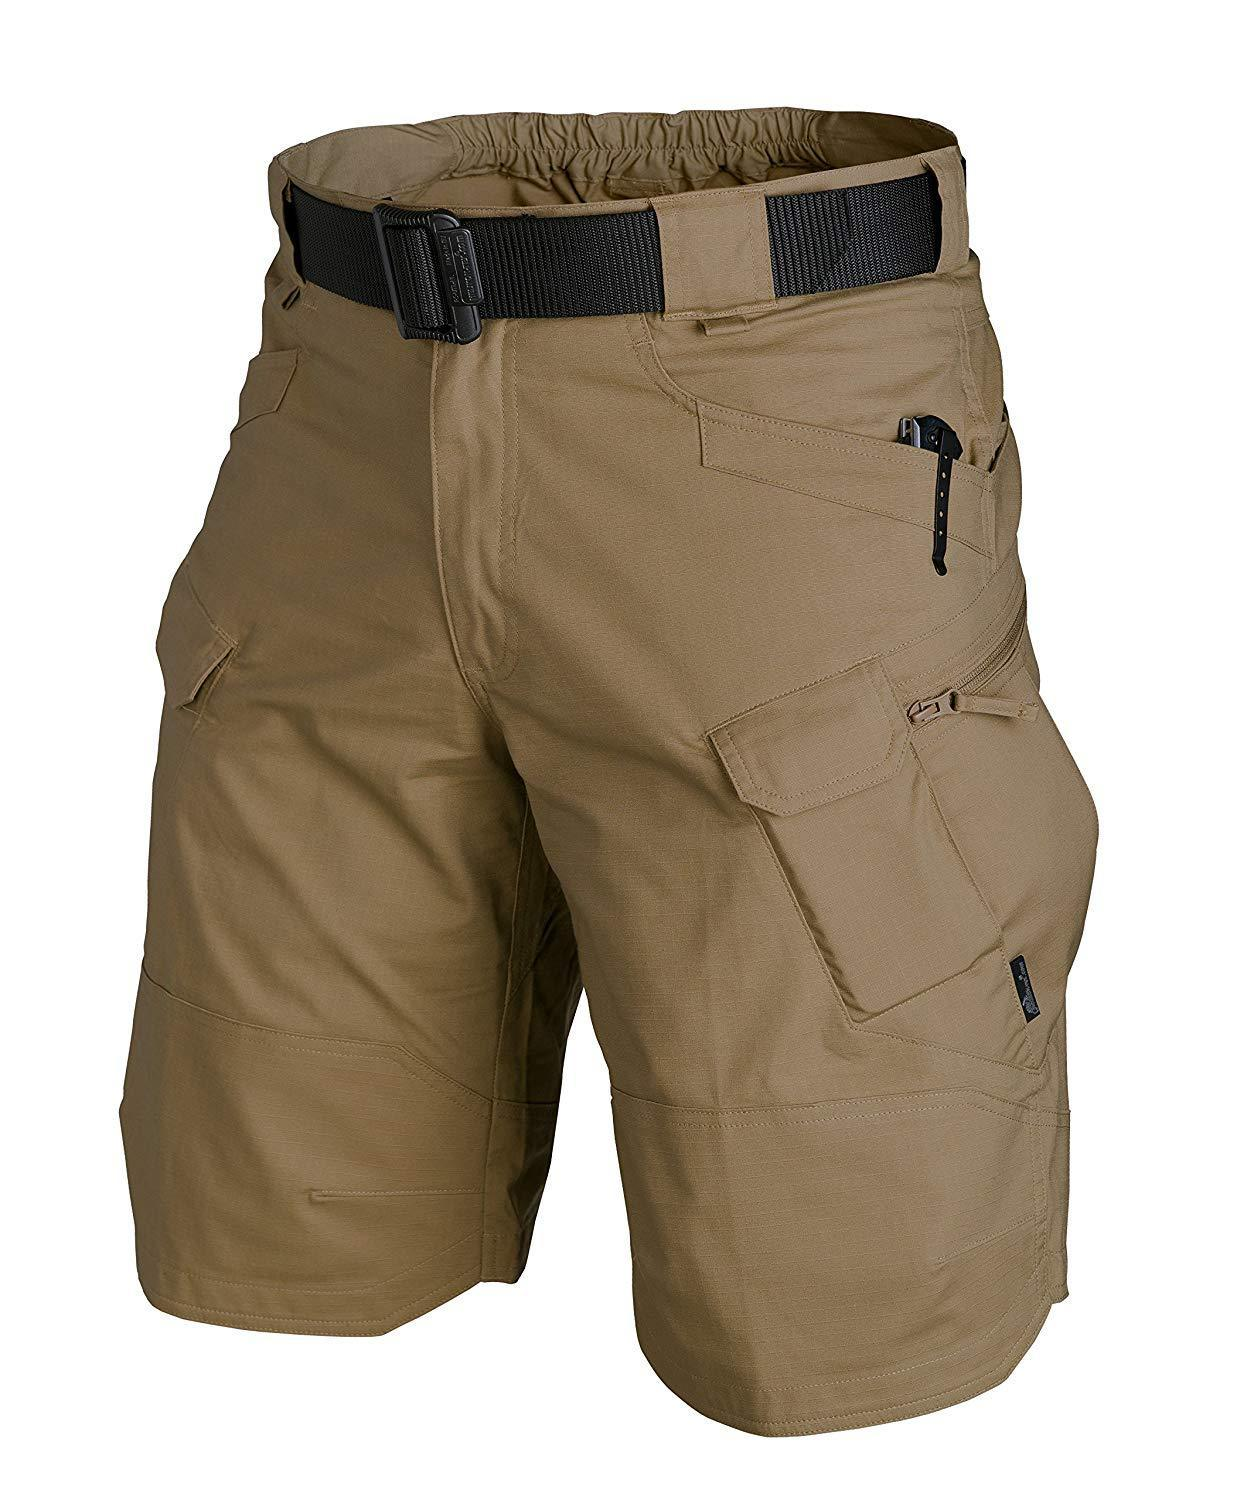 (Last Day Promotion 80% OFF)-Waterproof Tactical Shorts-Summer Comfortable Product